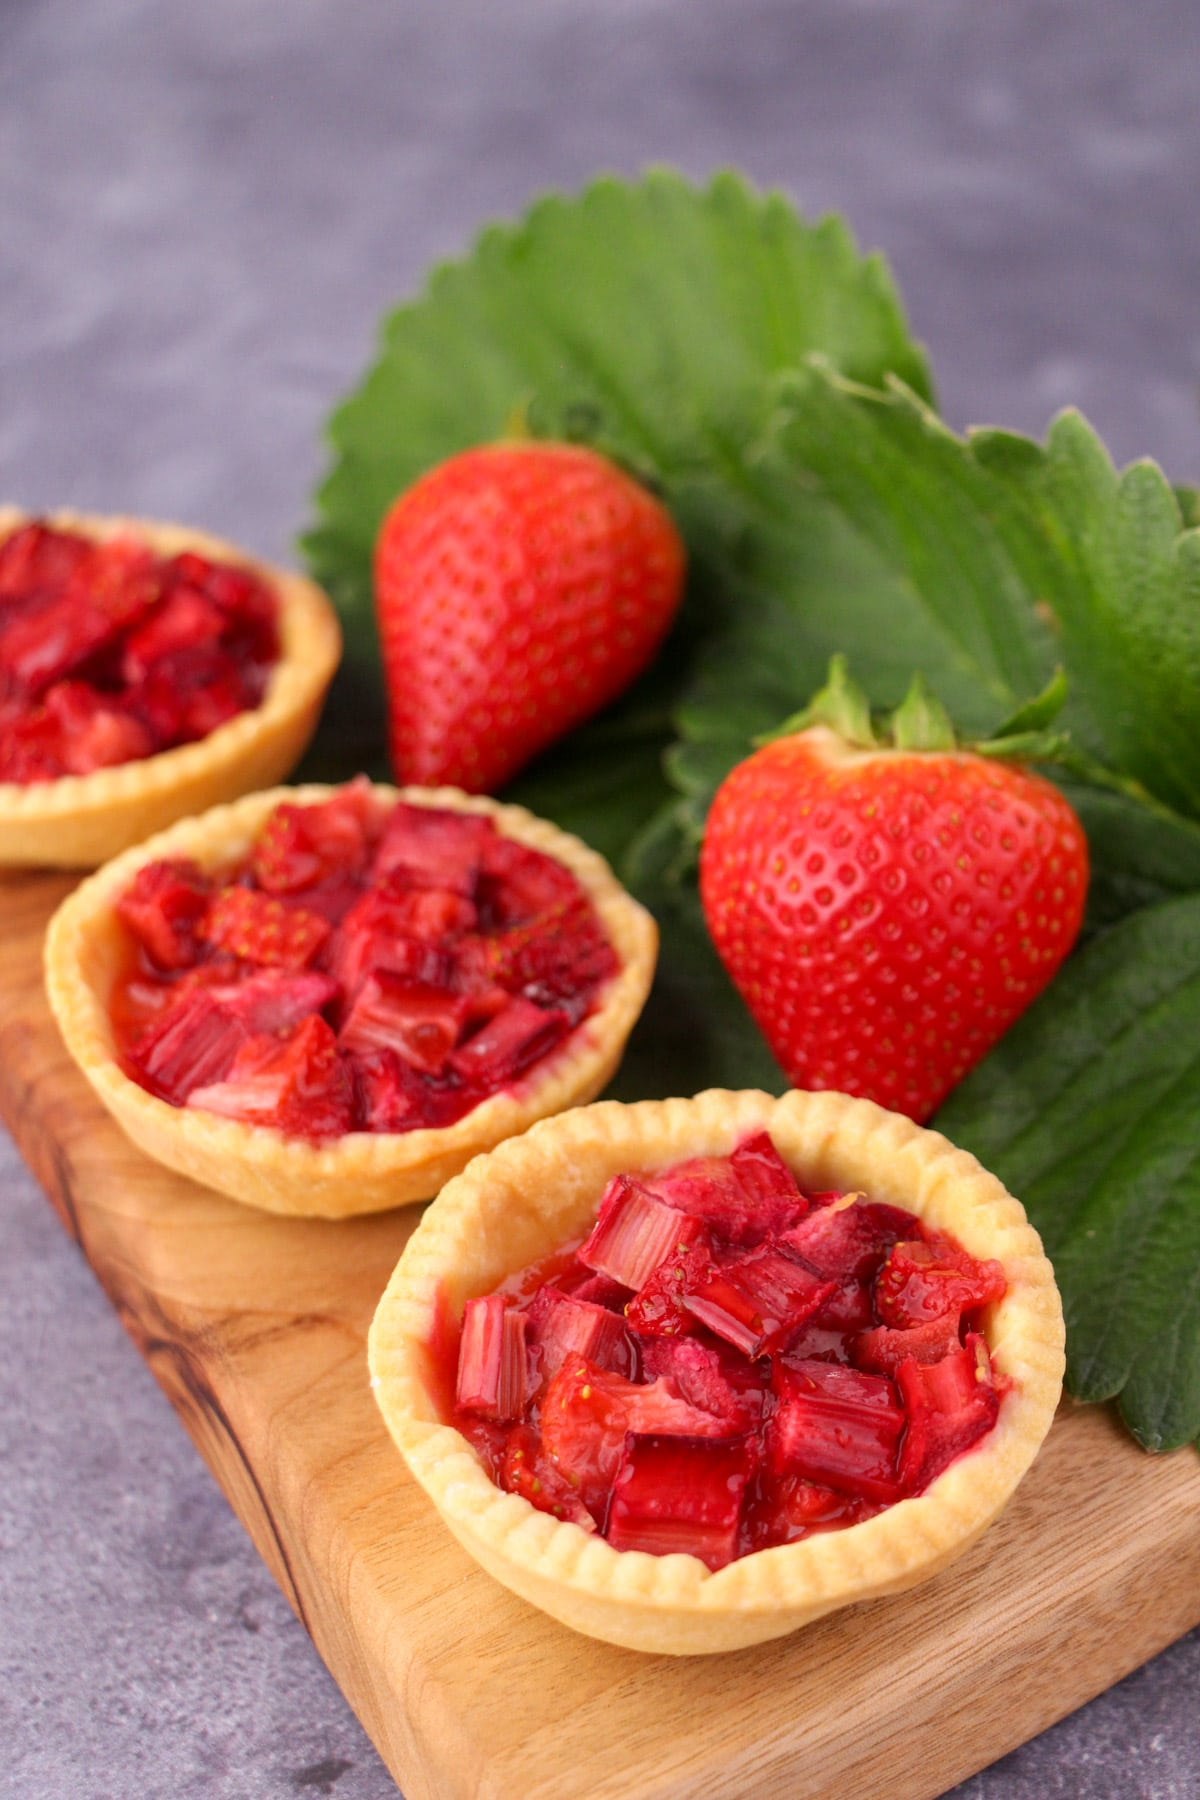 Row of strawberry rhubarb tartlets on a chopping board, with fresh strawberries and strawberry leaves on the side.